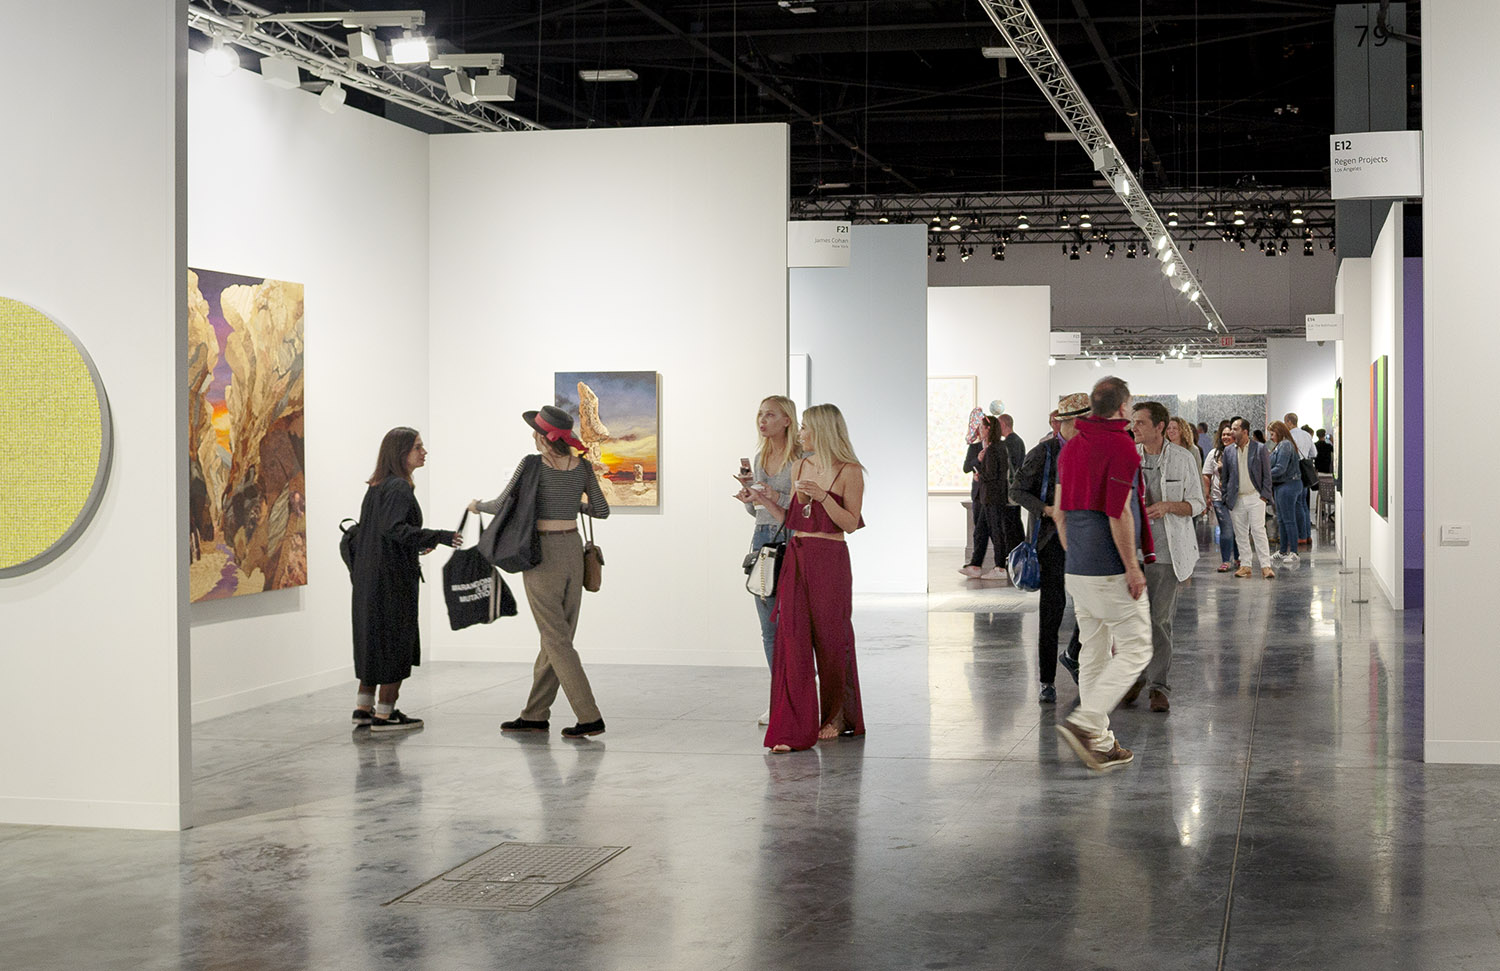 MBCC hosts Art Basel Miami Beach – a premier contemporary art fair – welcoming a record 83,000 visitors from around the world. © Tom Clark